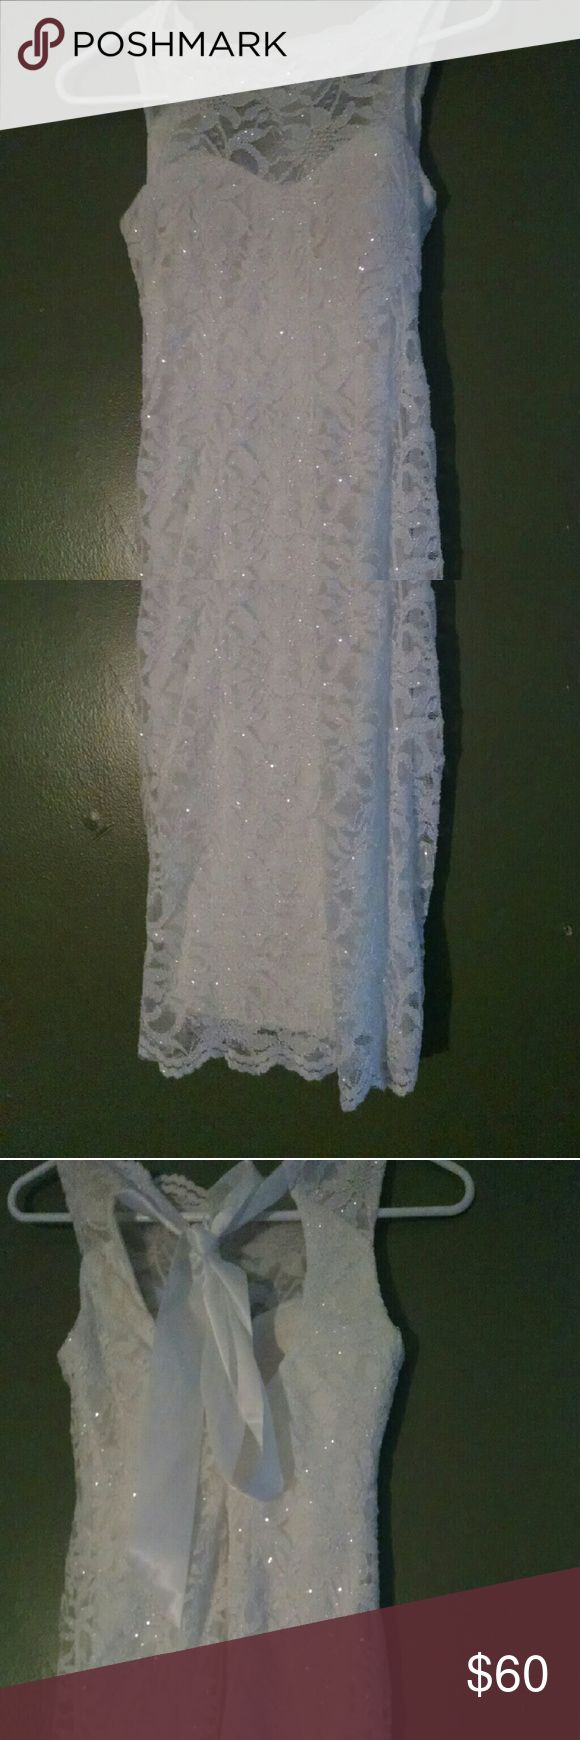 White sparkly lace body con dress Worn once for graduation ceremony. No wear. Size 3/4 Morgan & Co. Dresses Mini